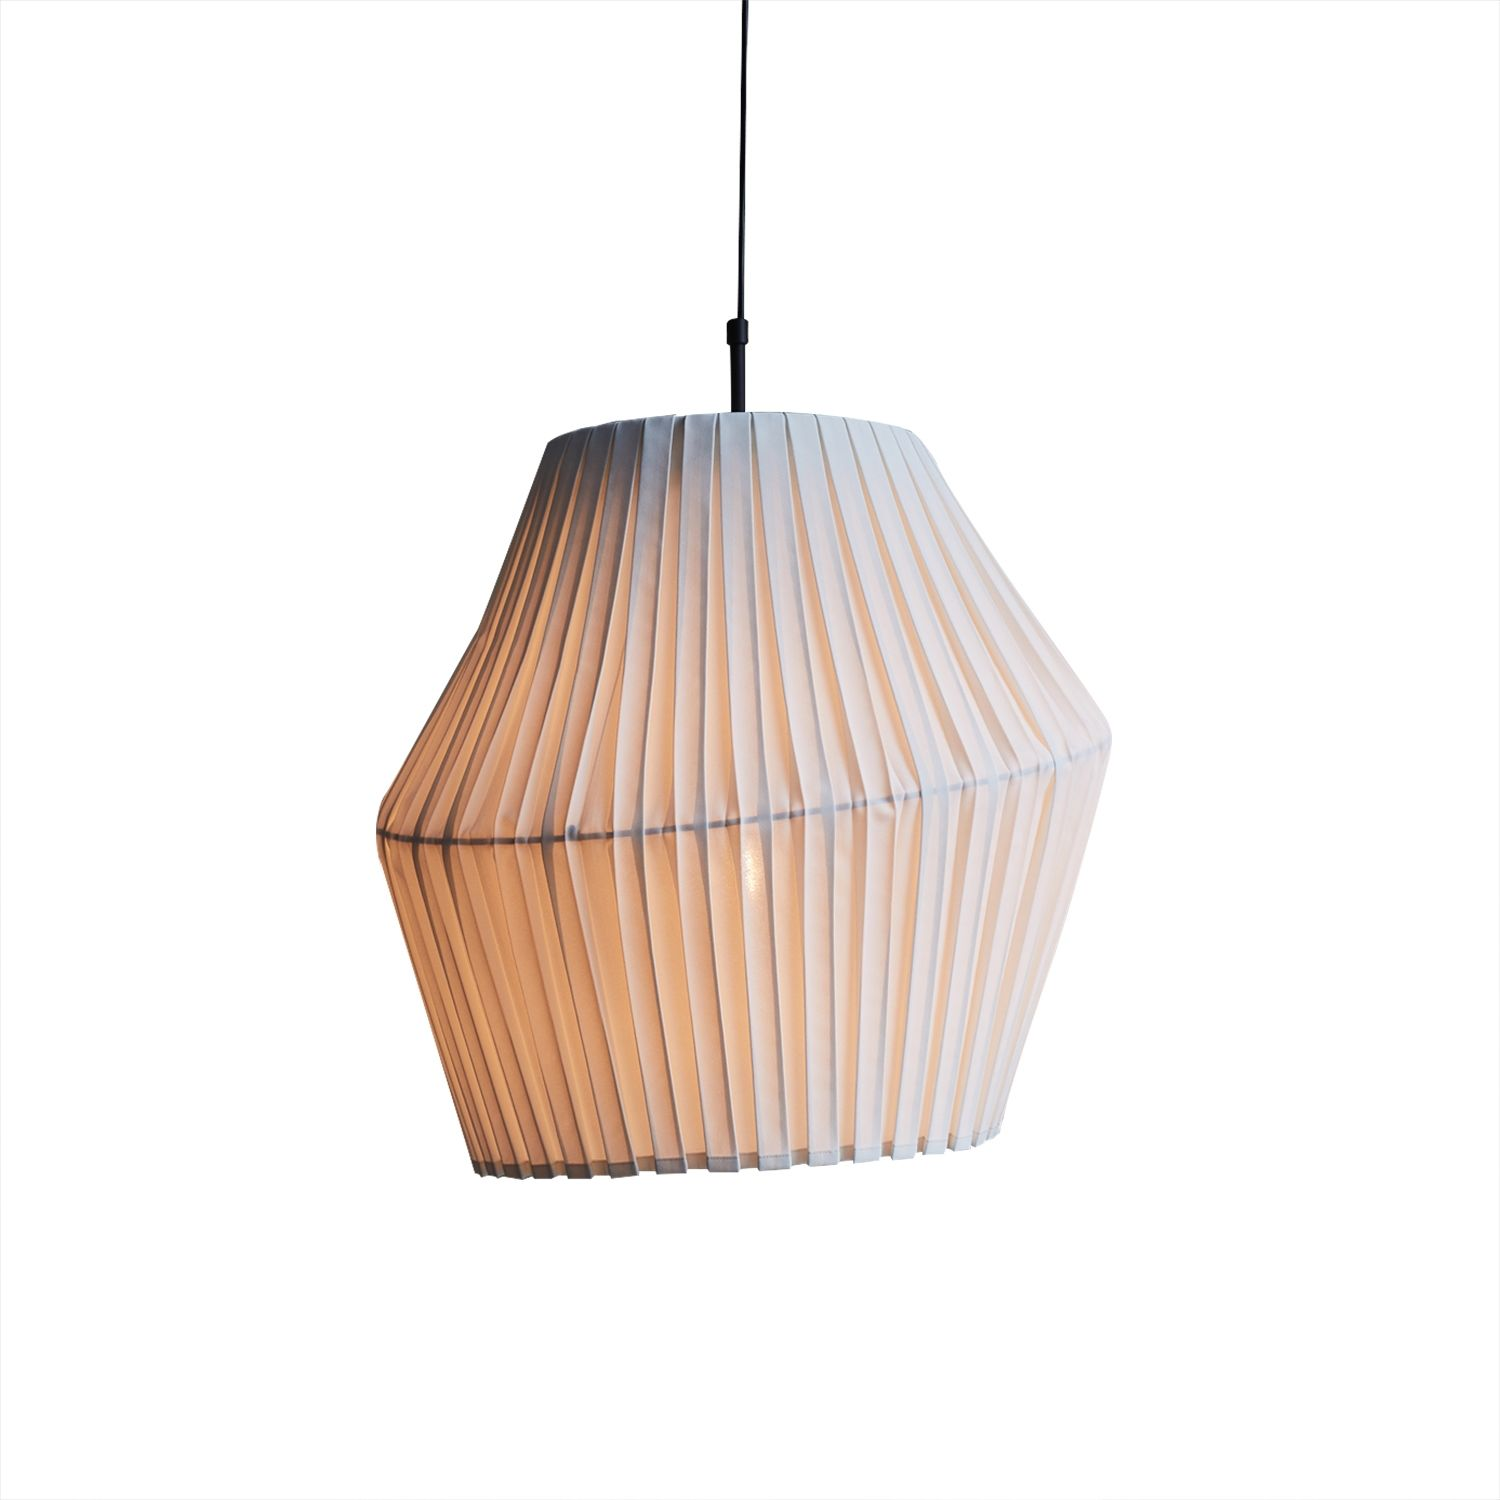 Pleat hanglamp Hollands Licht